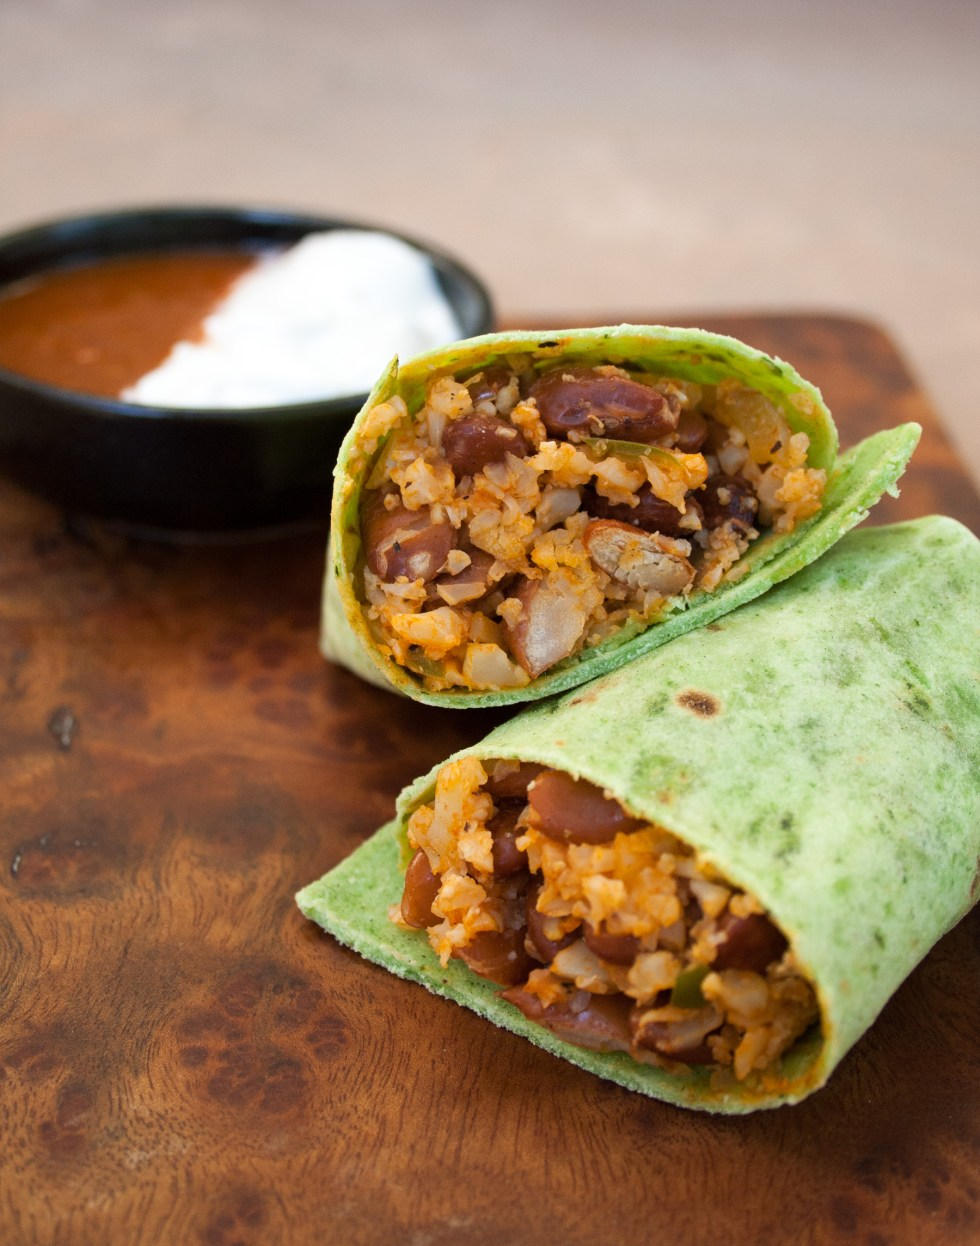 Bean and Mexican Cauliflower Rice Burritos - These spicy vegan gluten free burritos are great for a weeknight because they are super easy to throw together.